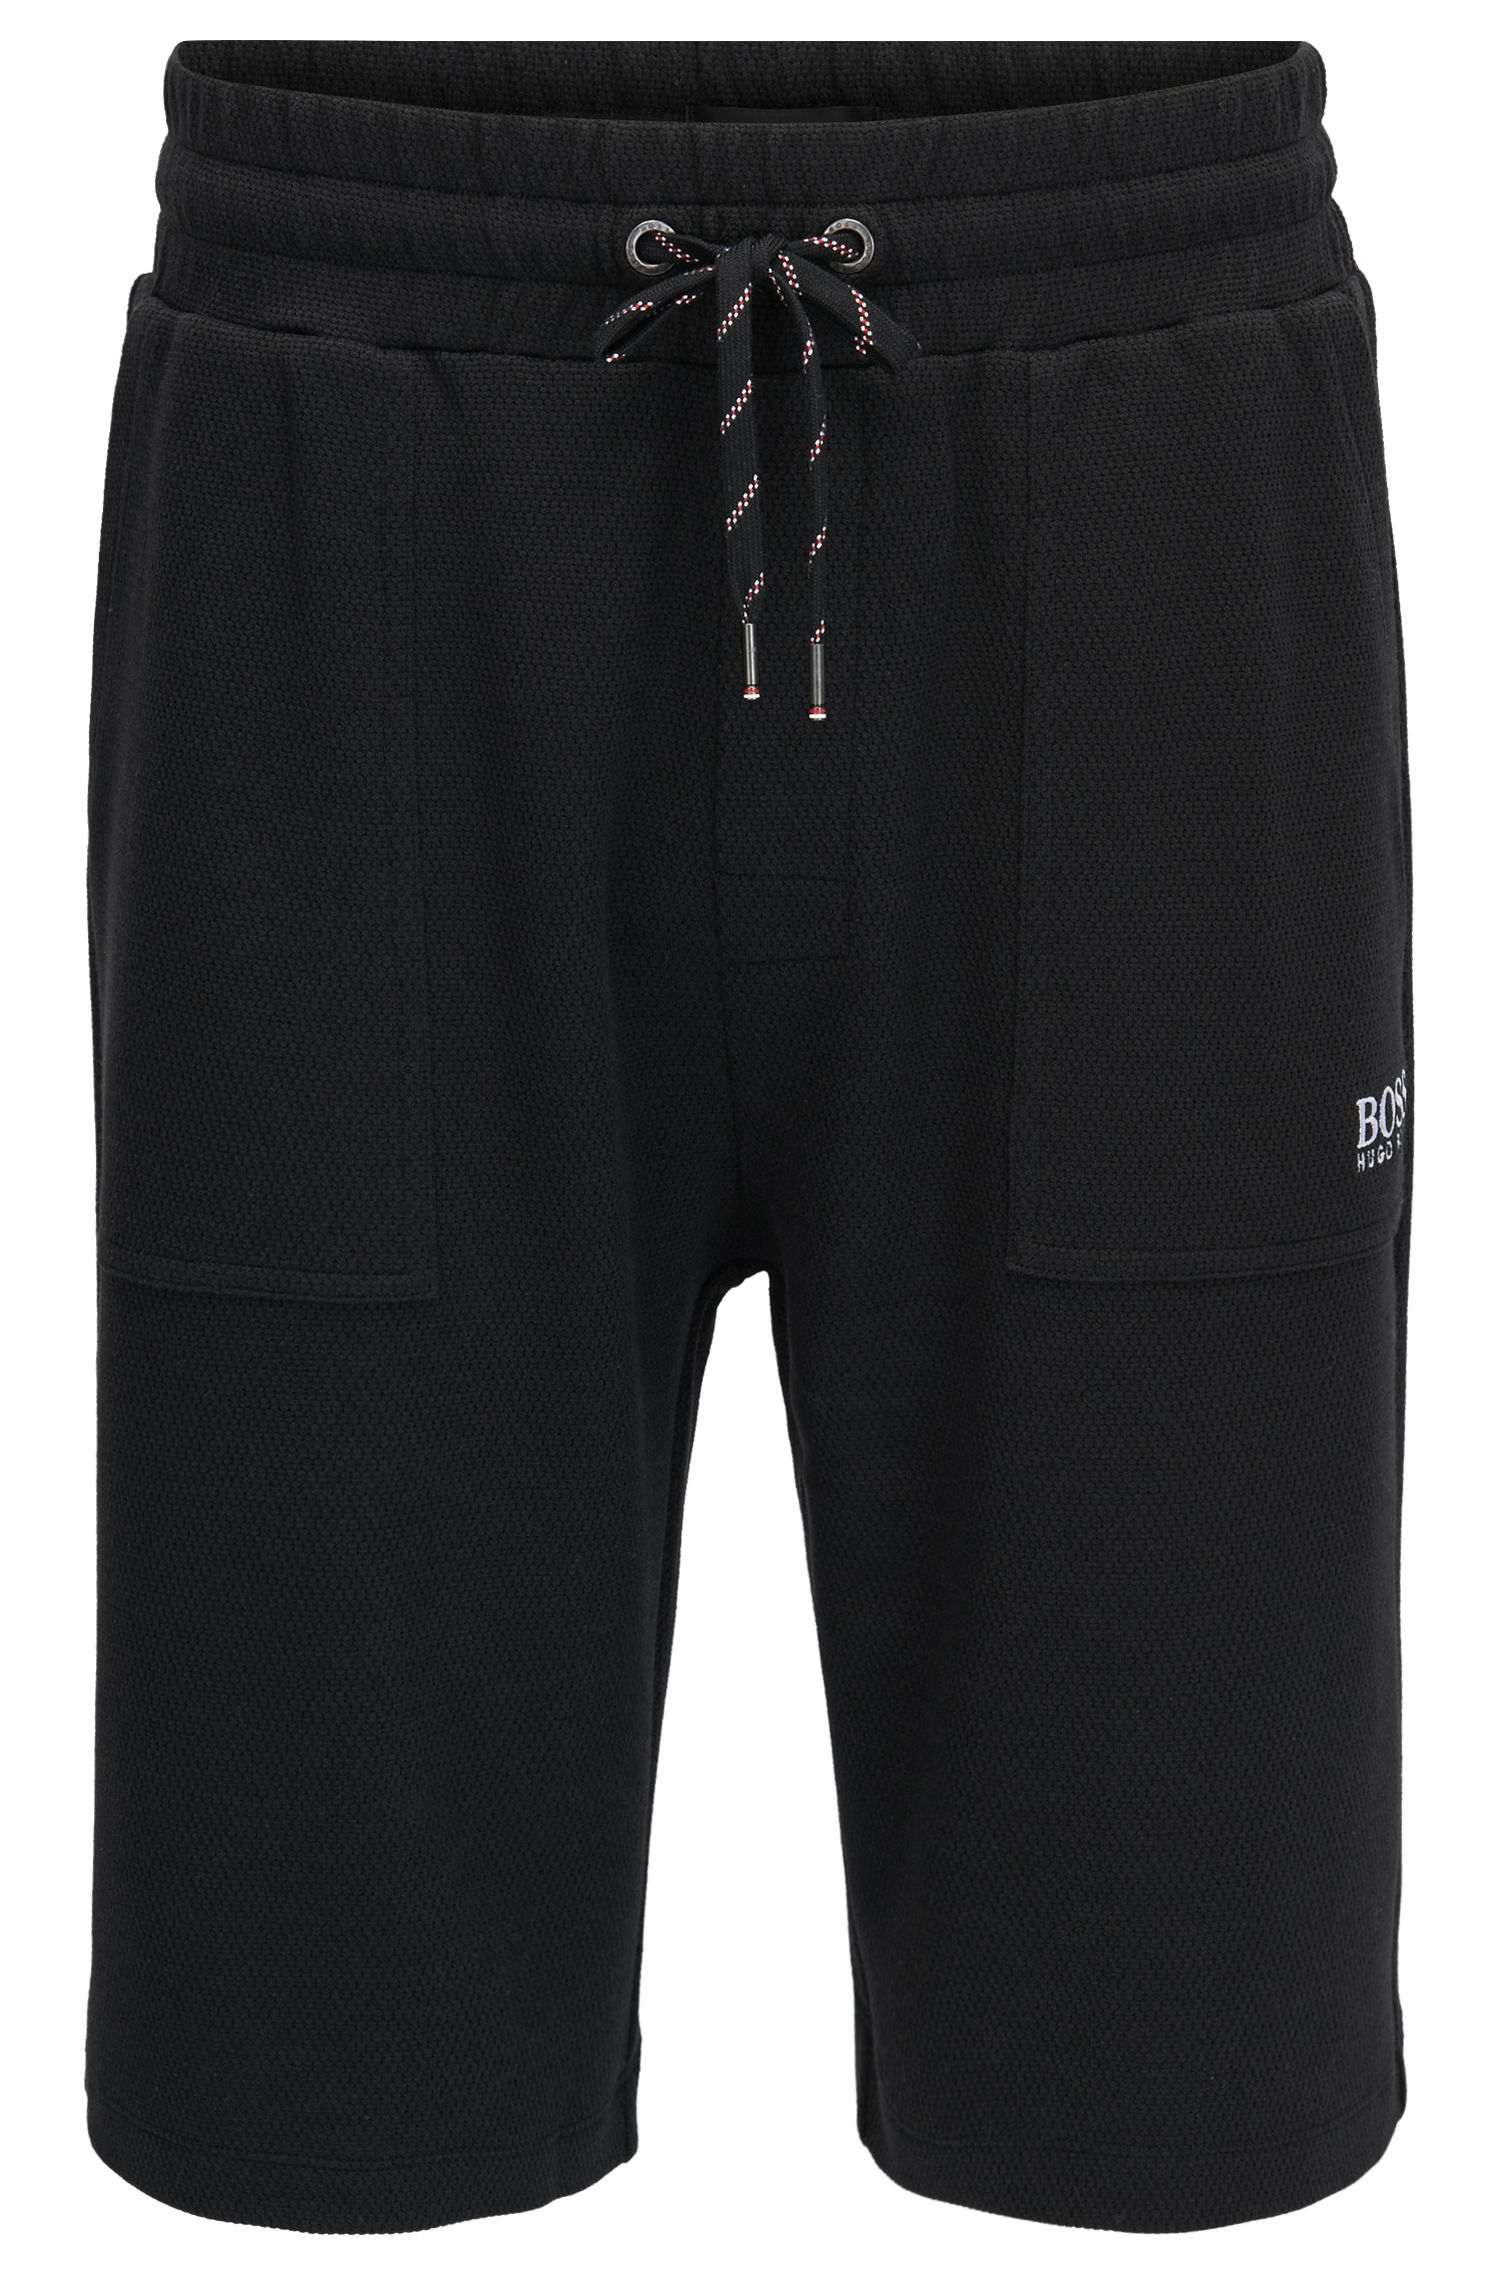 Jersey Blend Sweatshort | Contemp Shorts, Black